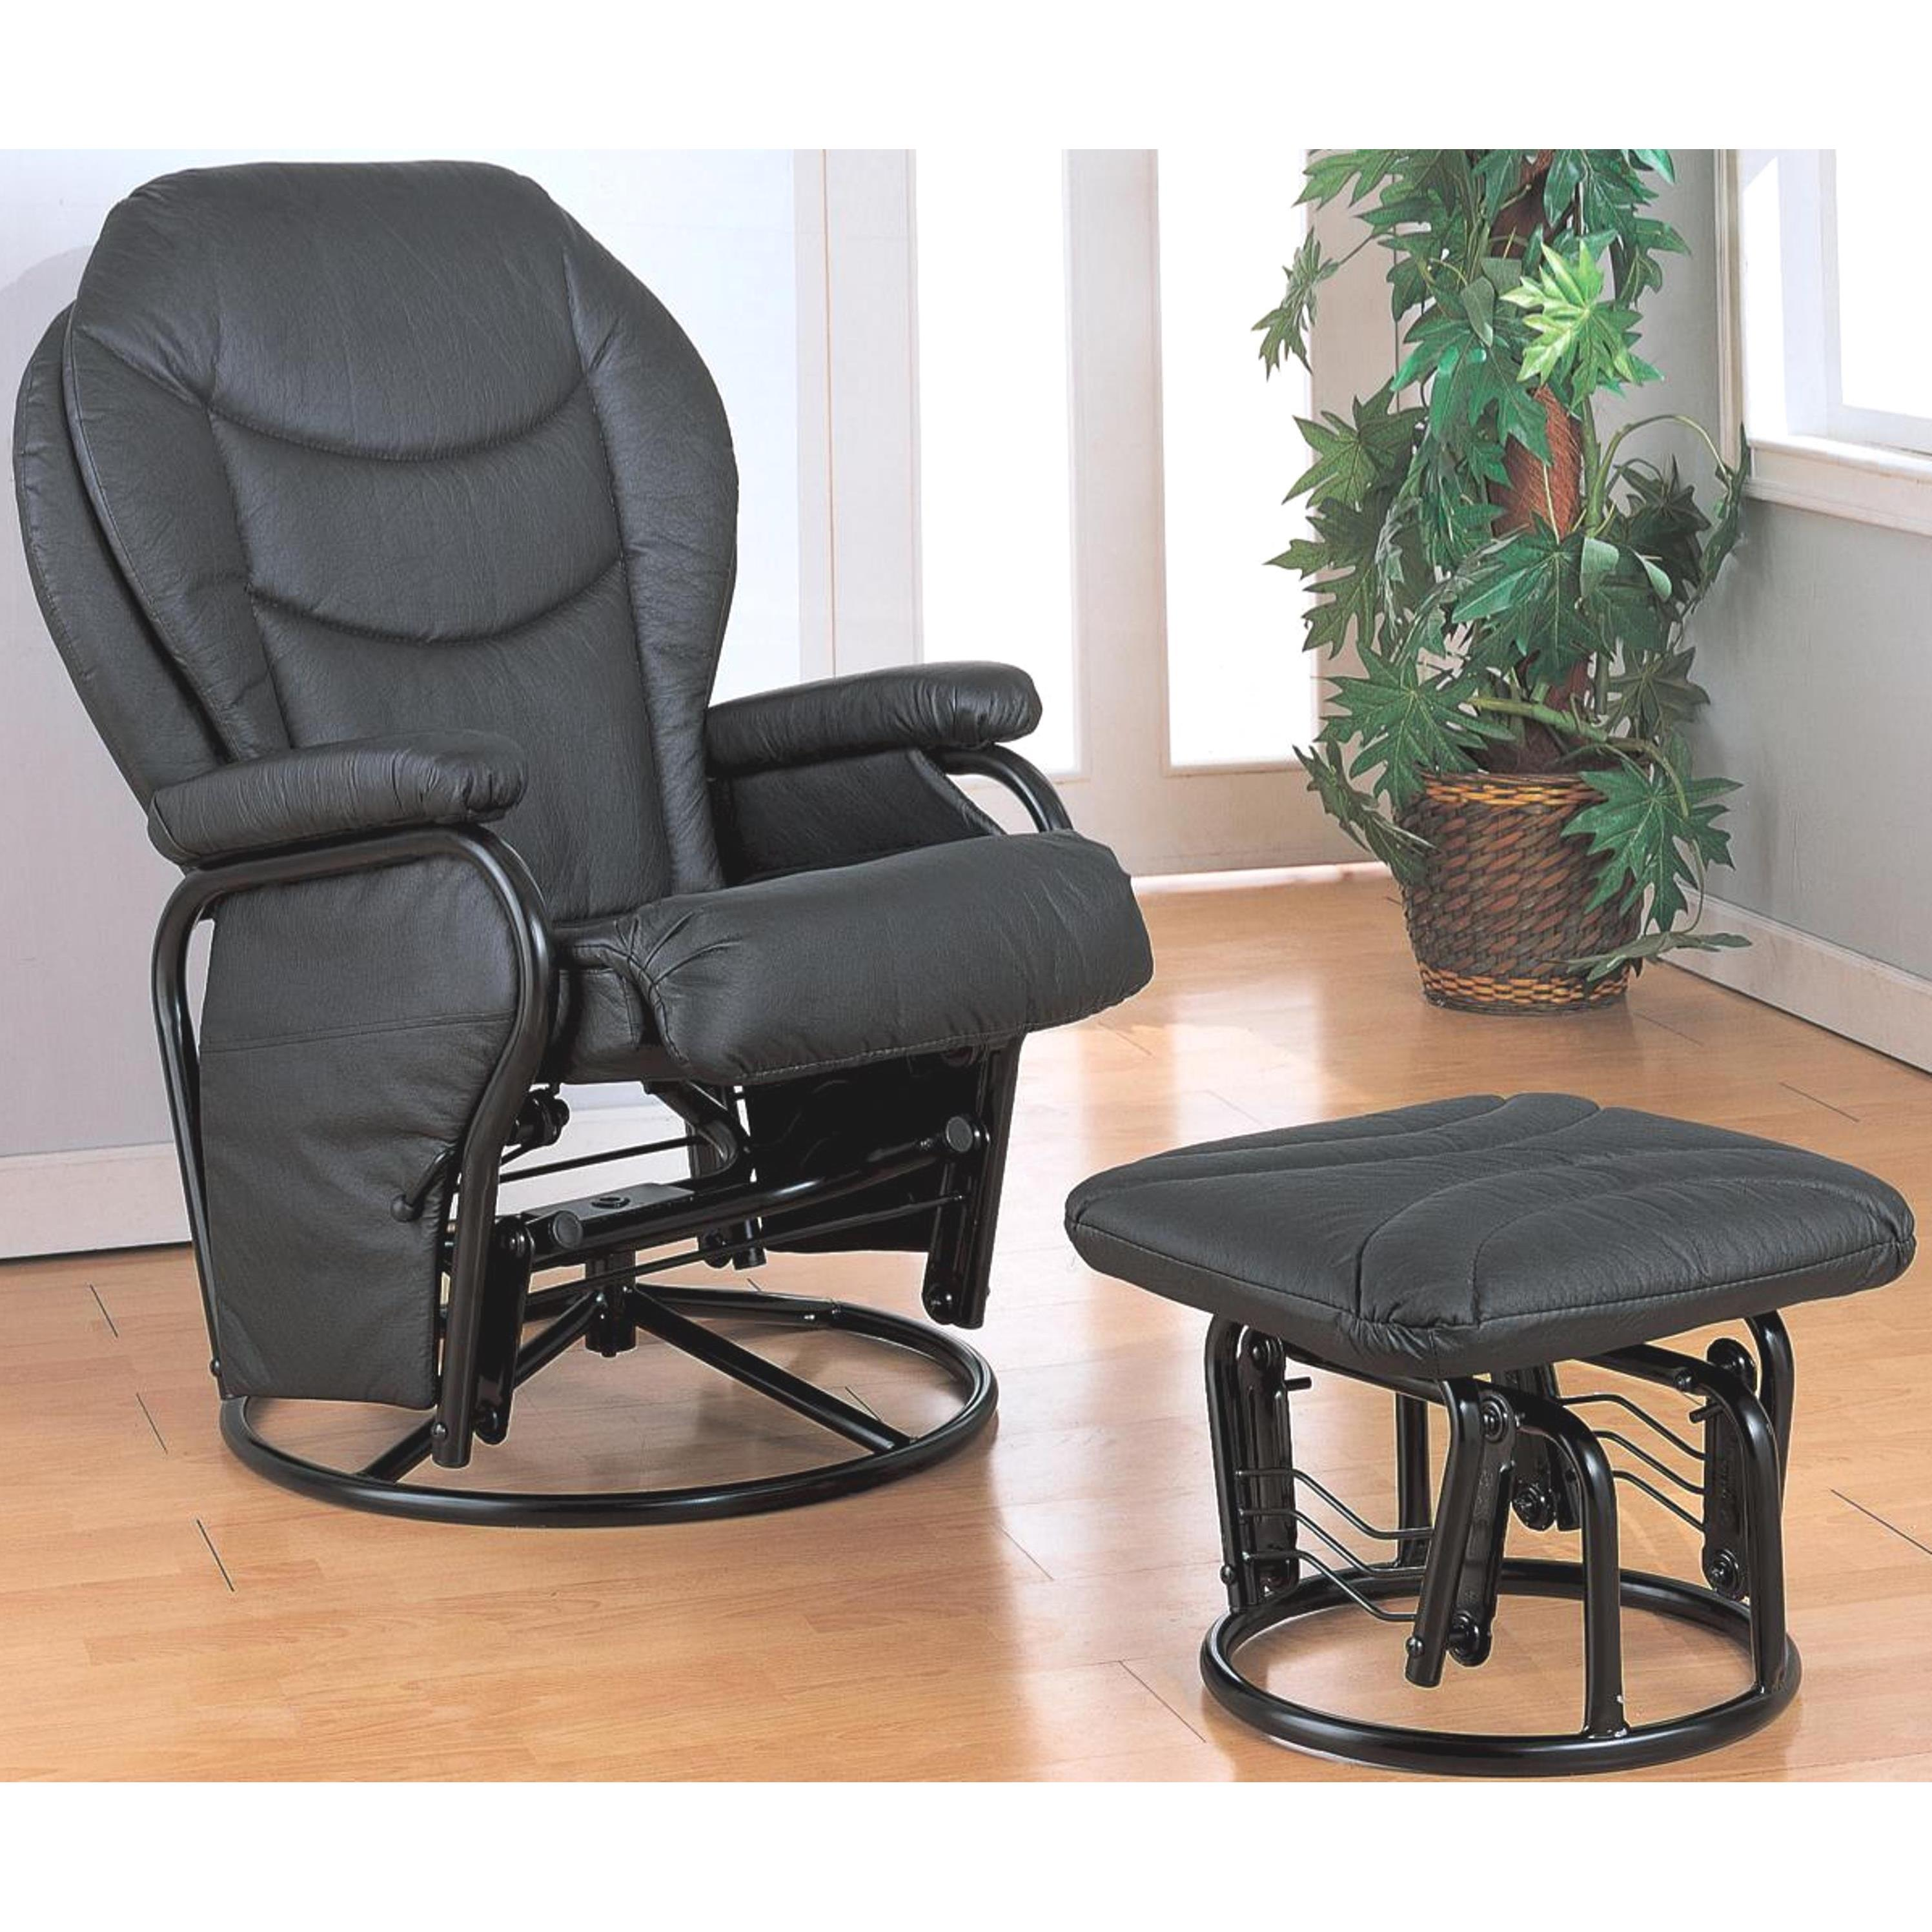 Ollius Swivel Glider Recliner Ottoman Set (Black), Size S...